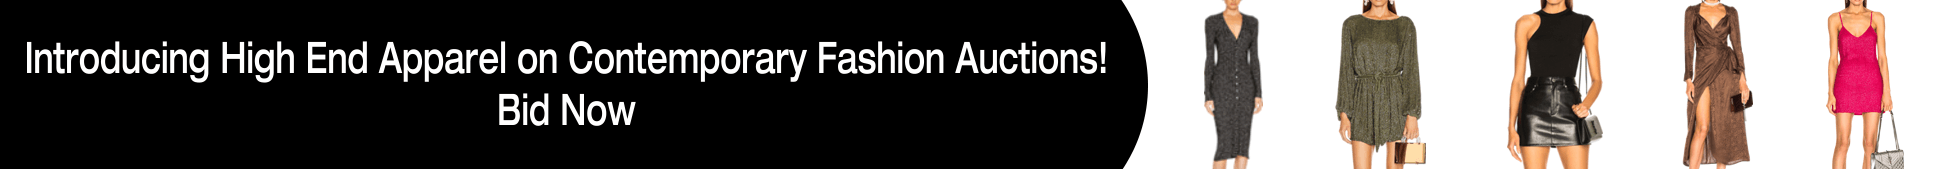 High End Fashion Liquidation Auctions